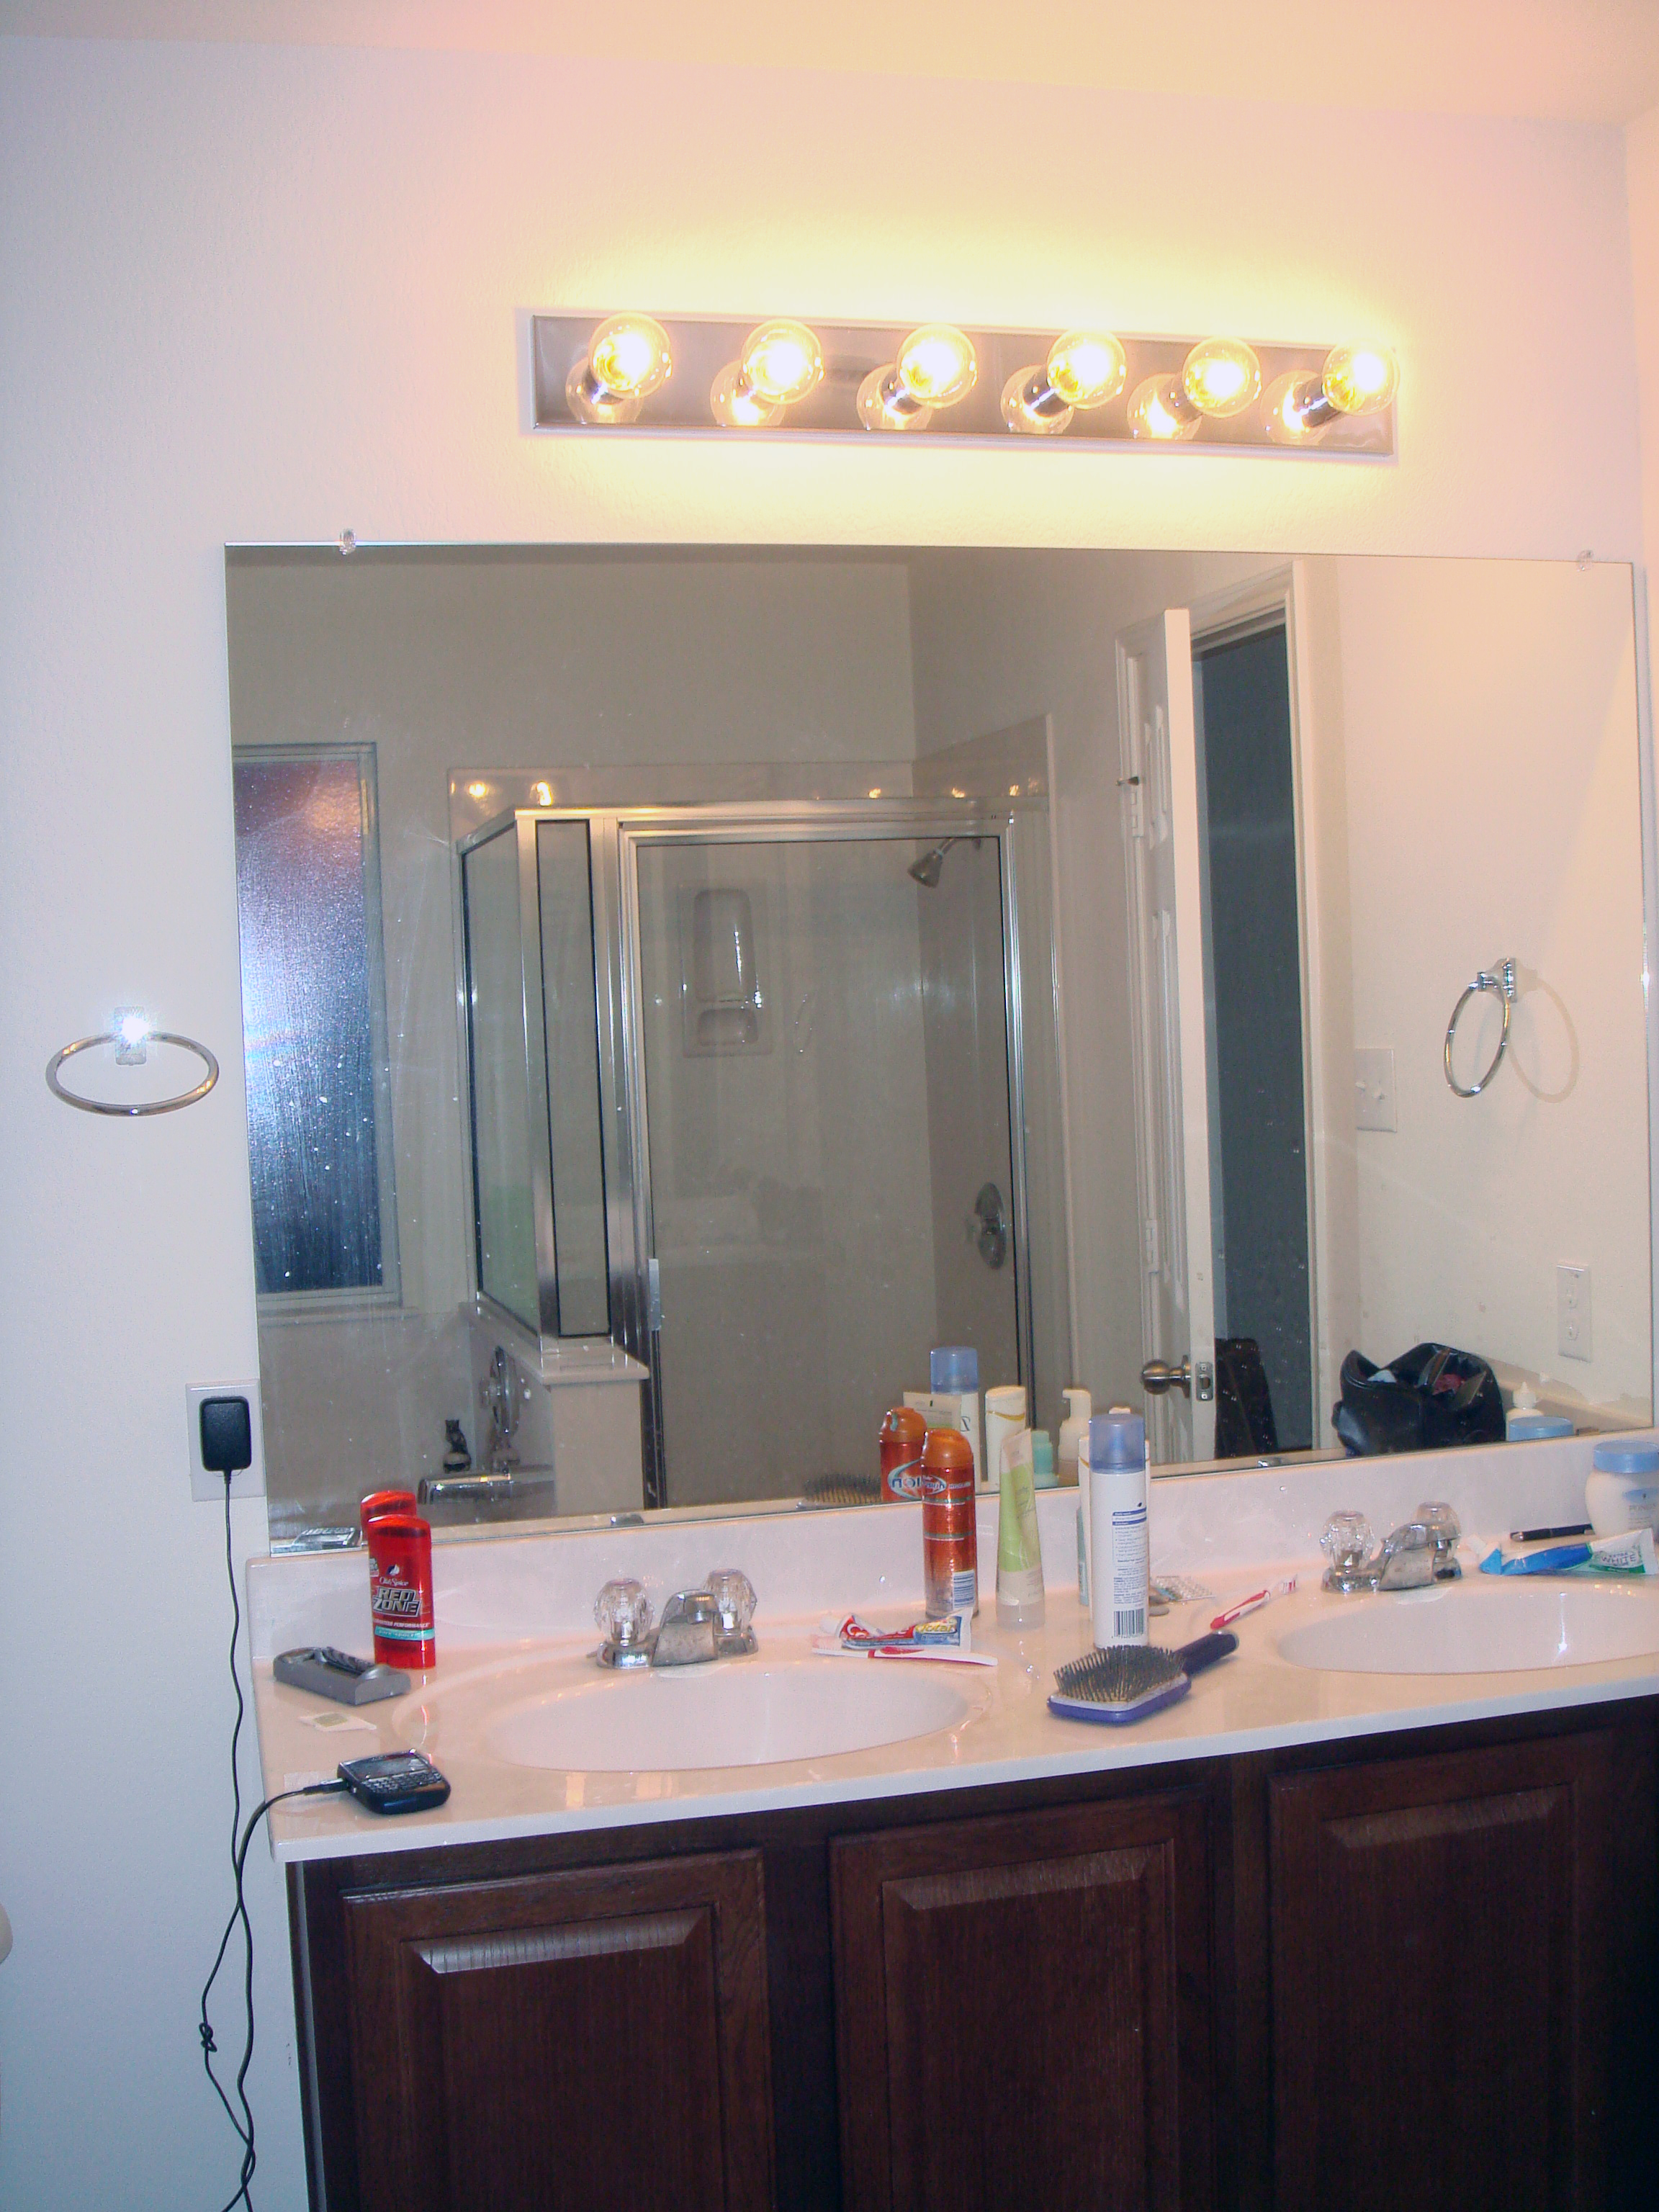 Bathroom Lighting Ideas Choices And Indecision What The Vita